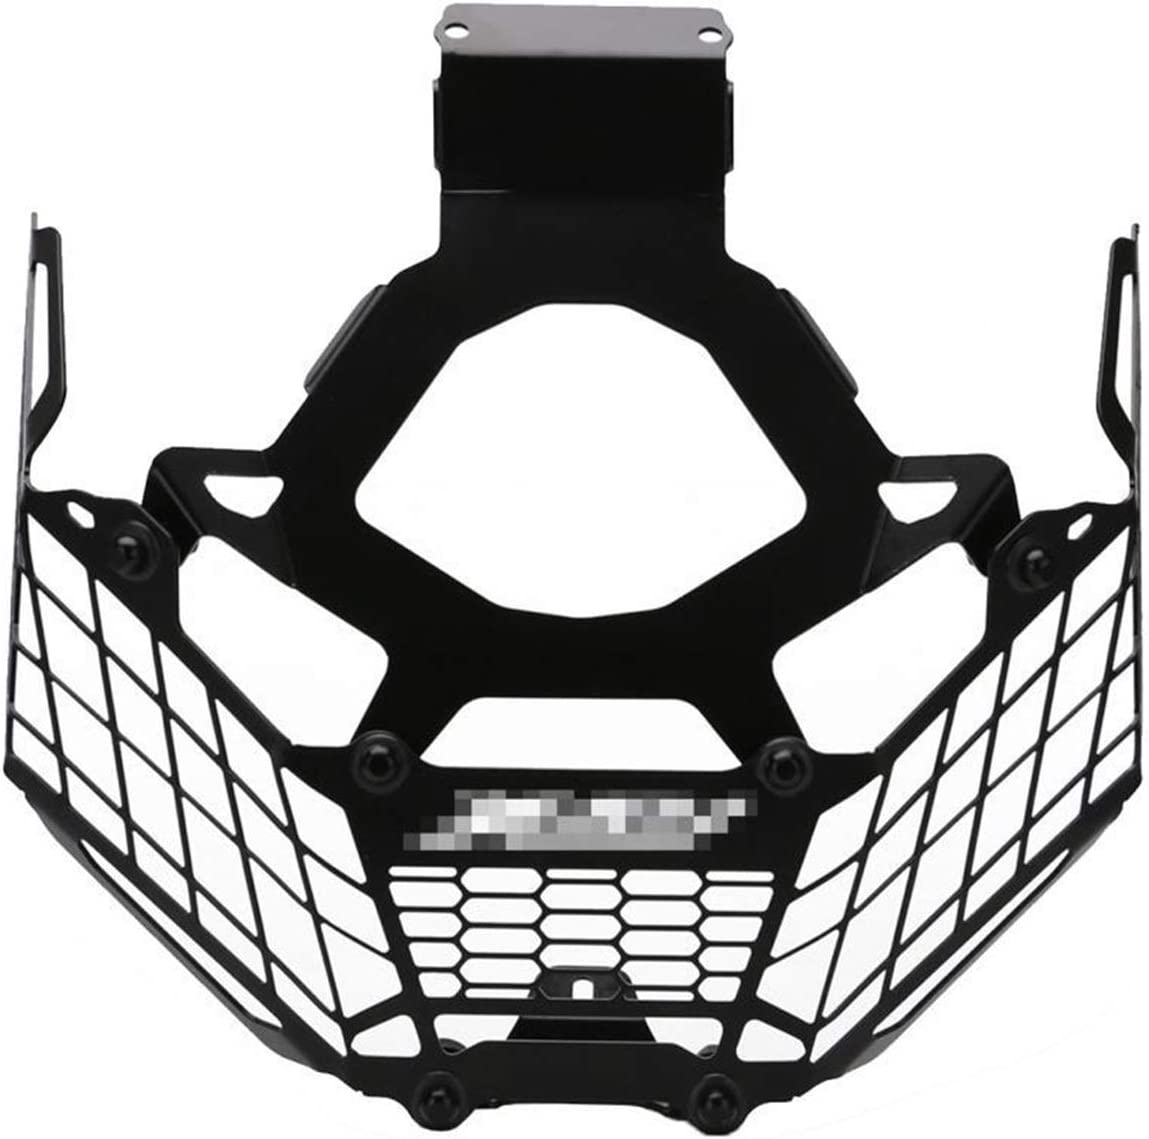 Tatumyin 67% OFF of fixed price Motorcycle Headlight Super Special SALE held Grille Cover Compat Guard Headlamp